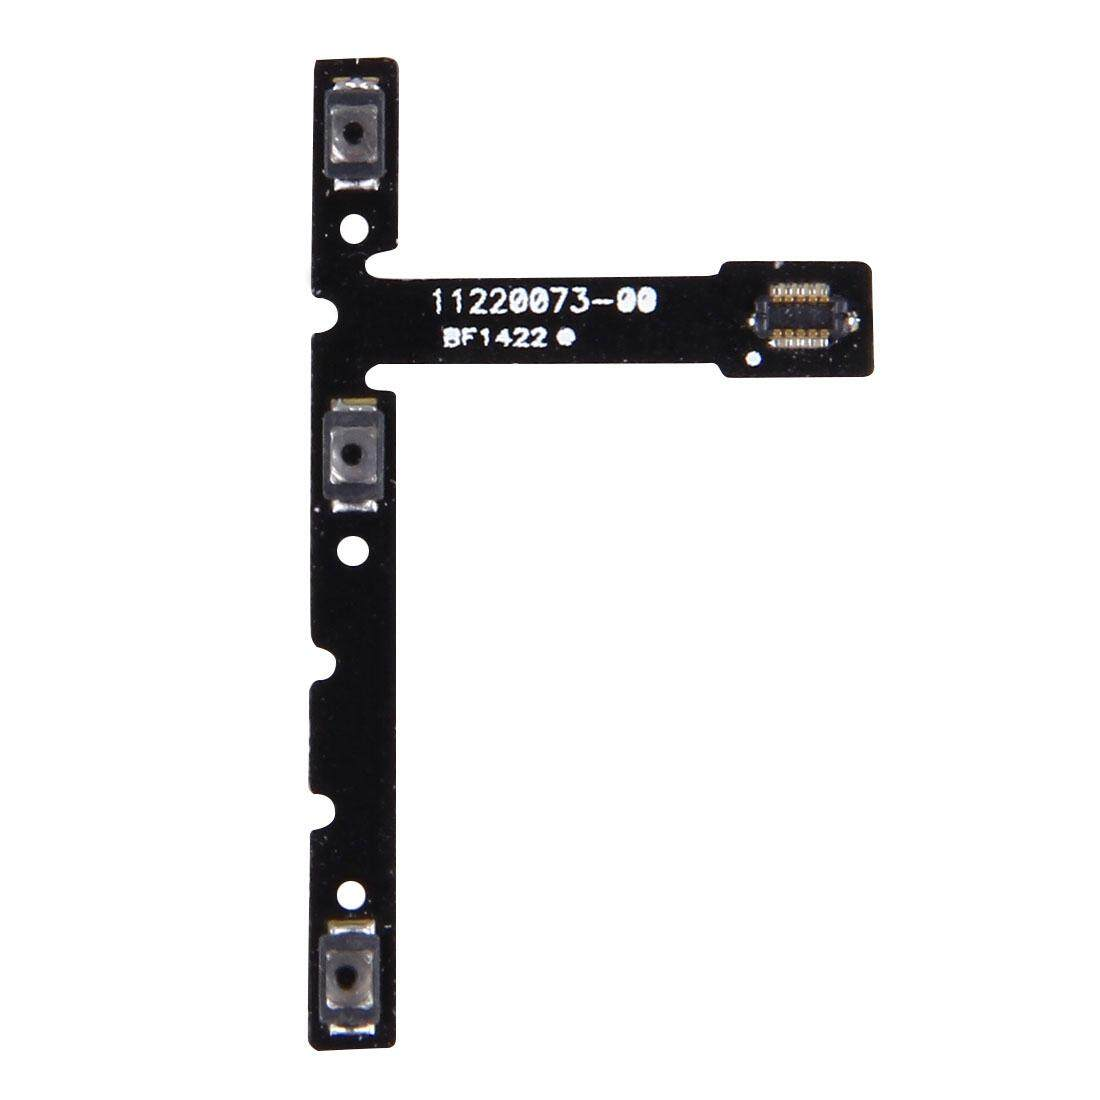 Easybuy Volume Power Button Side Keys Ribbon Flex Cable For Sony Switch Onoff Samsung I8190 Tombol On Off S3 Mini And Replacement Parts Nokia Xl